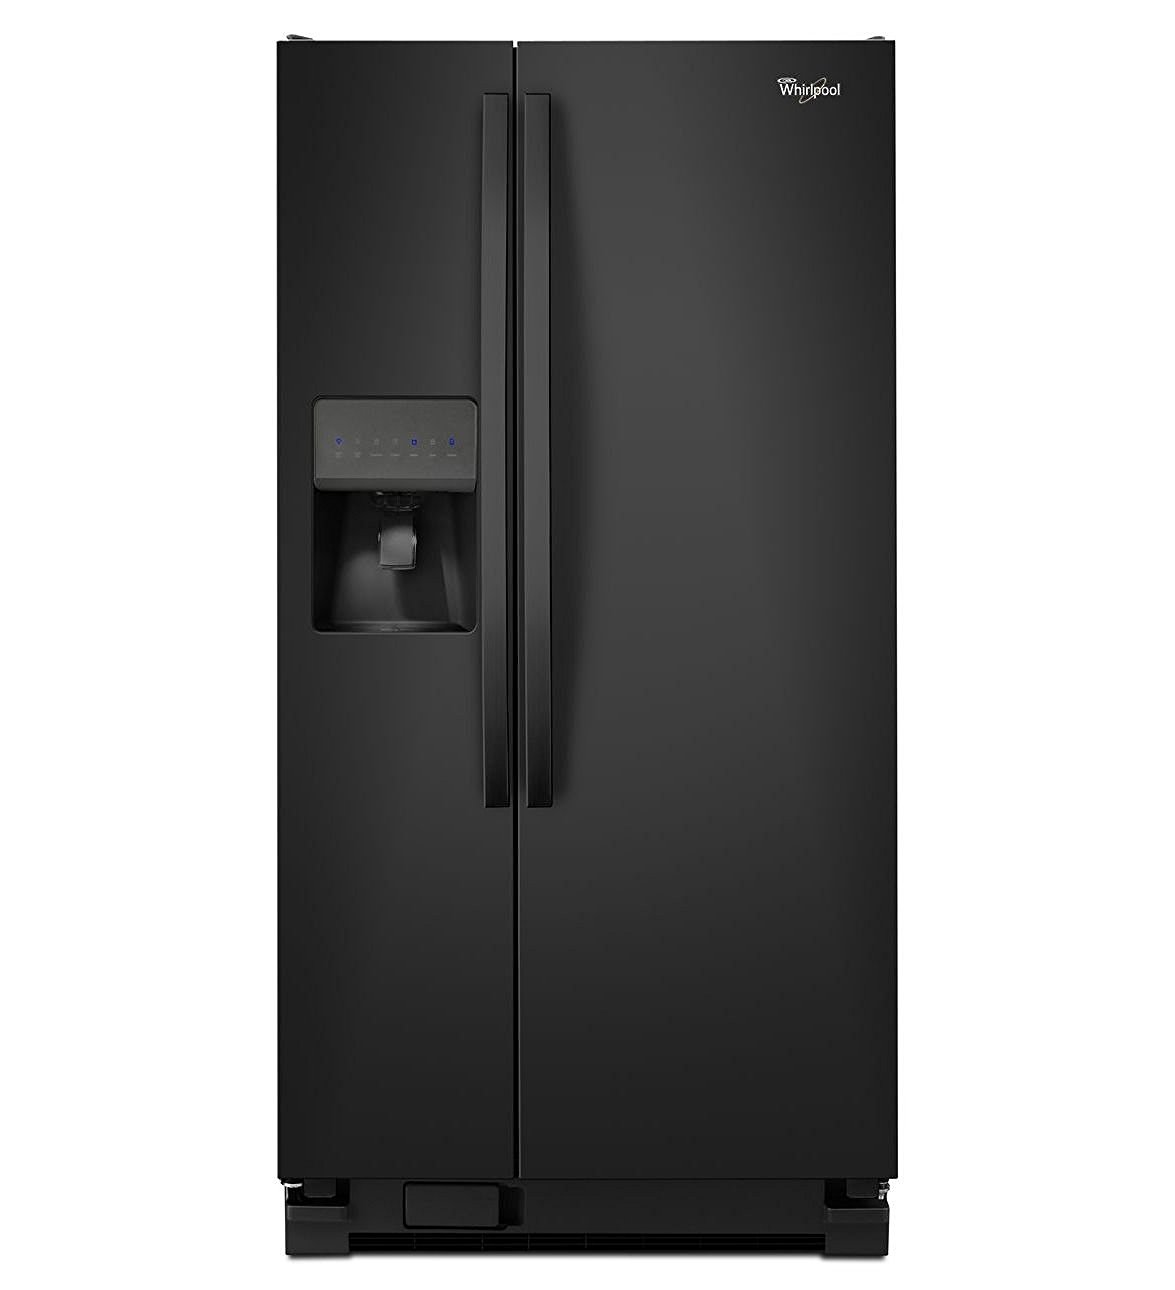 Whirlpool 22 Cu. Ft Side-By-Side Refrigerator w/ Adaptive Defrost and Electronic Temperature Control, Energy Star Compliant